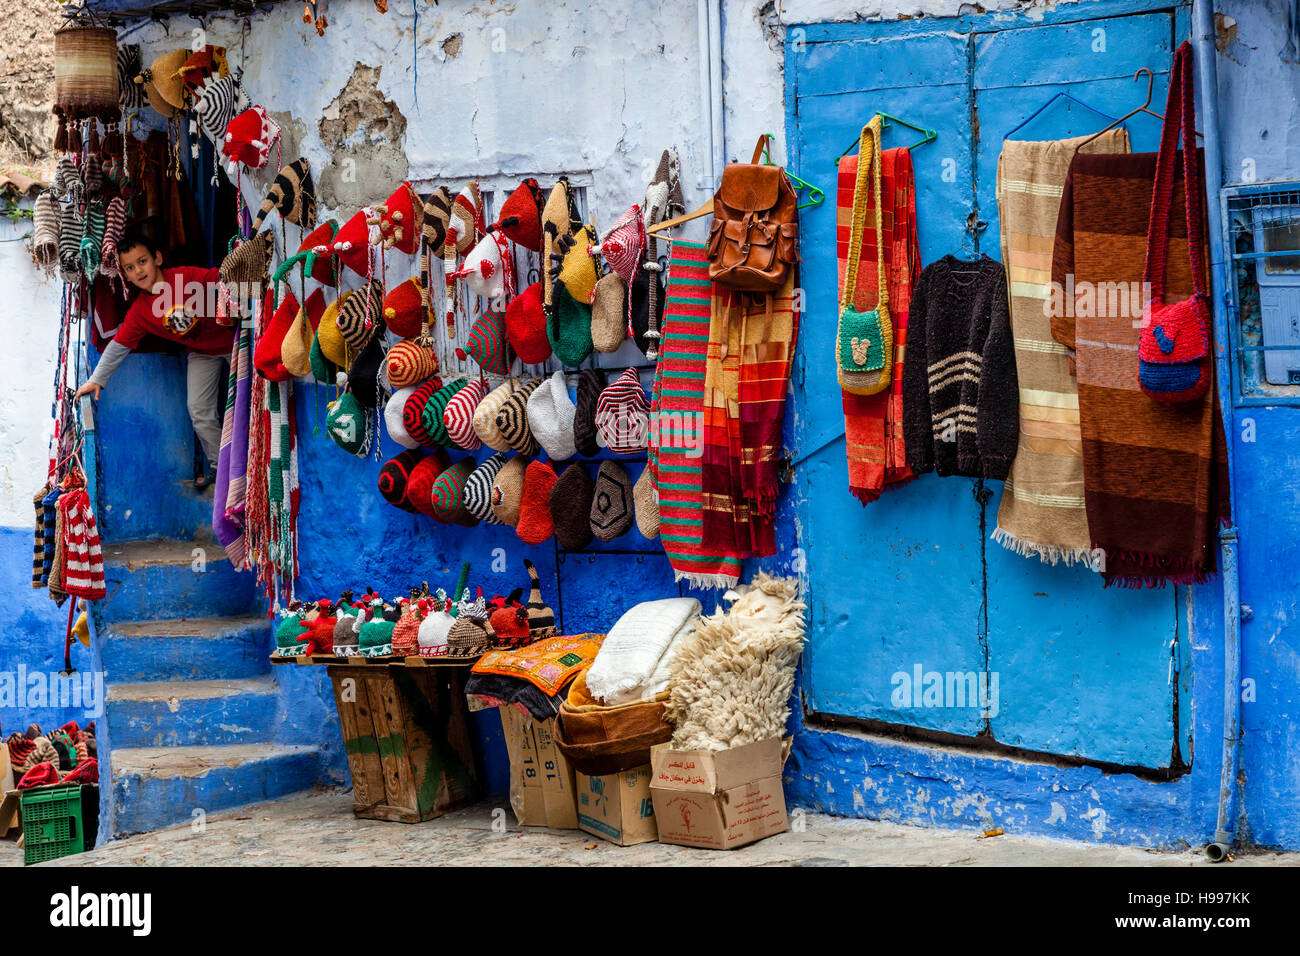 Souvenir Hats and Blankets For Sale In The Medina, Chefchaouen, Morocco - Stock Image